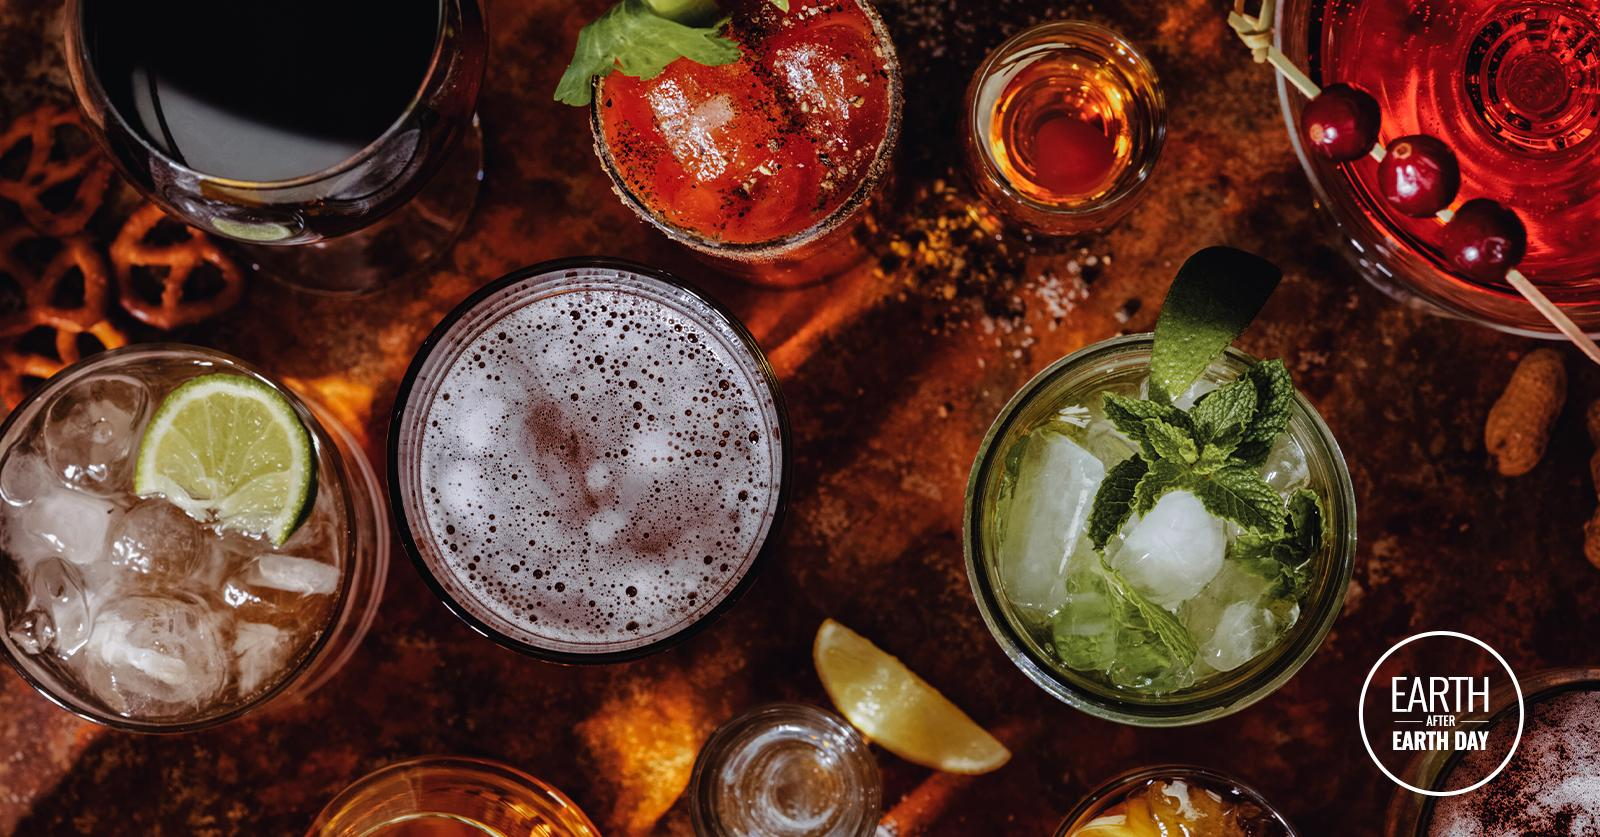 Sustainable Liquor: What to Know When Shopping for Eco-Friendly Booze